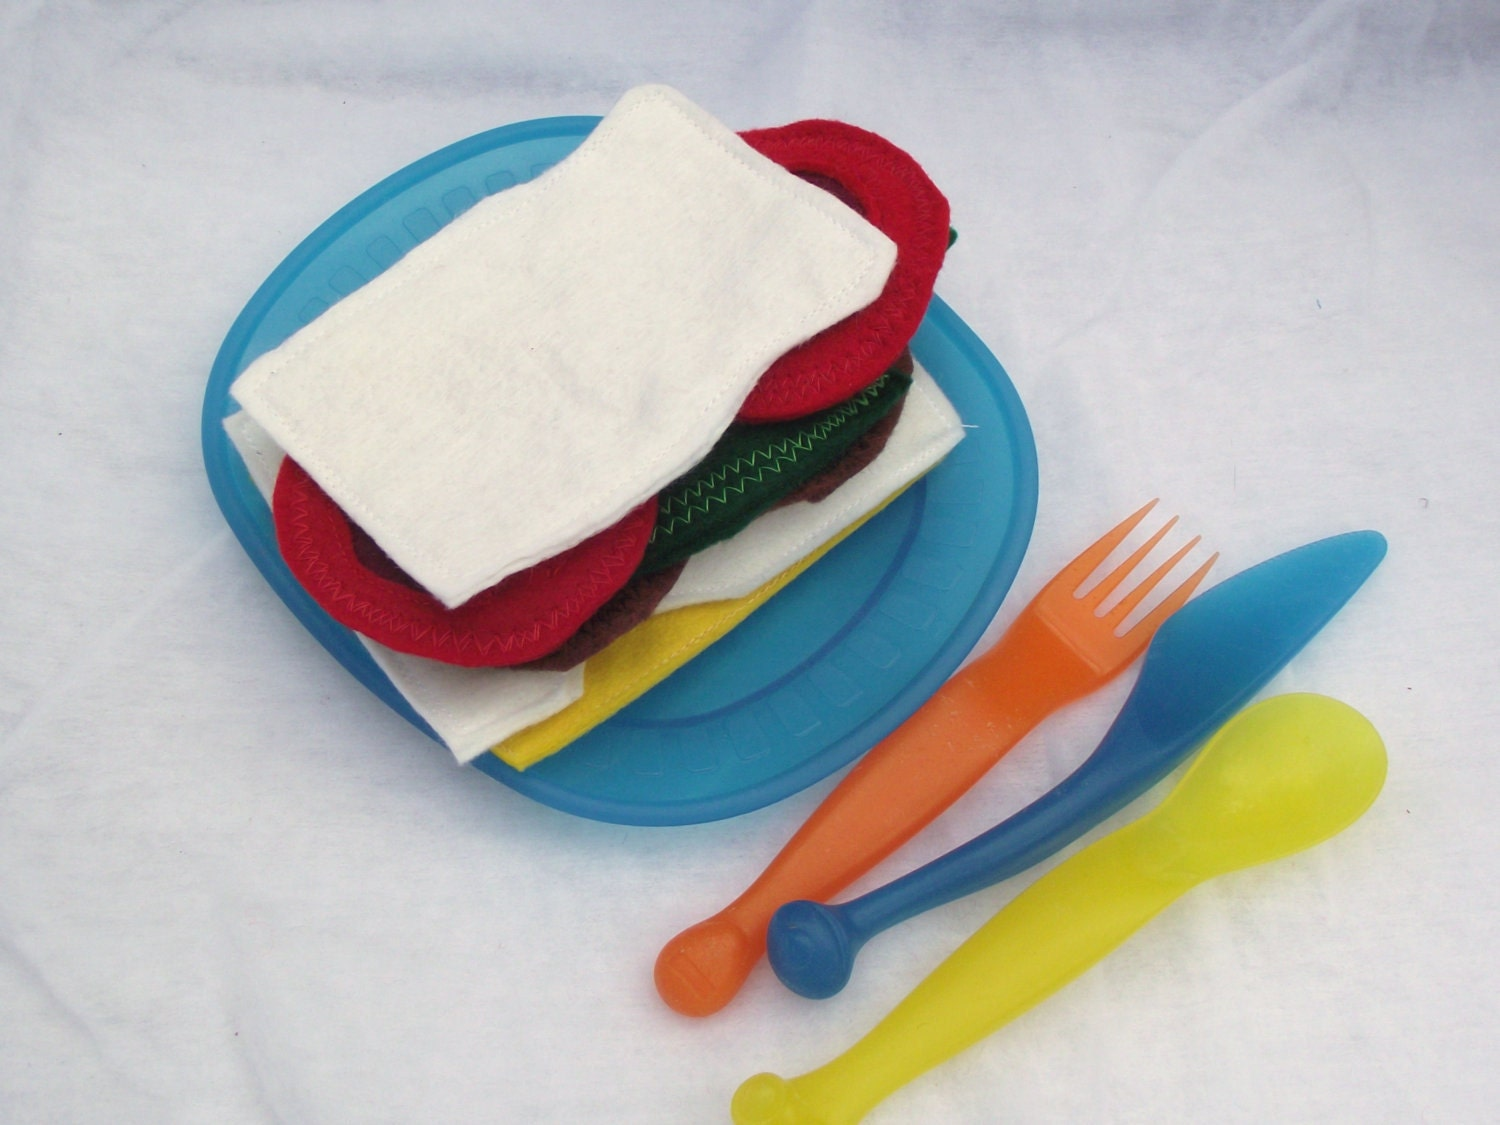 Eco Friendly Sandwich Picnic Set that is a fun toy for kids